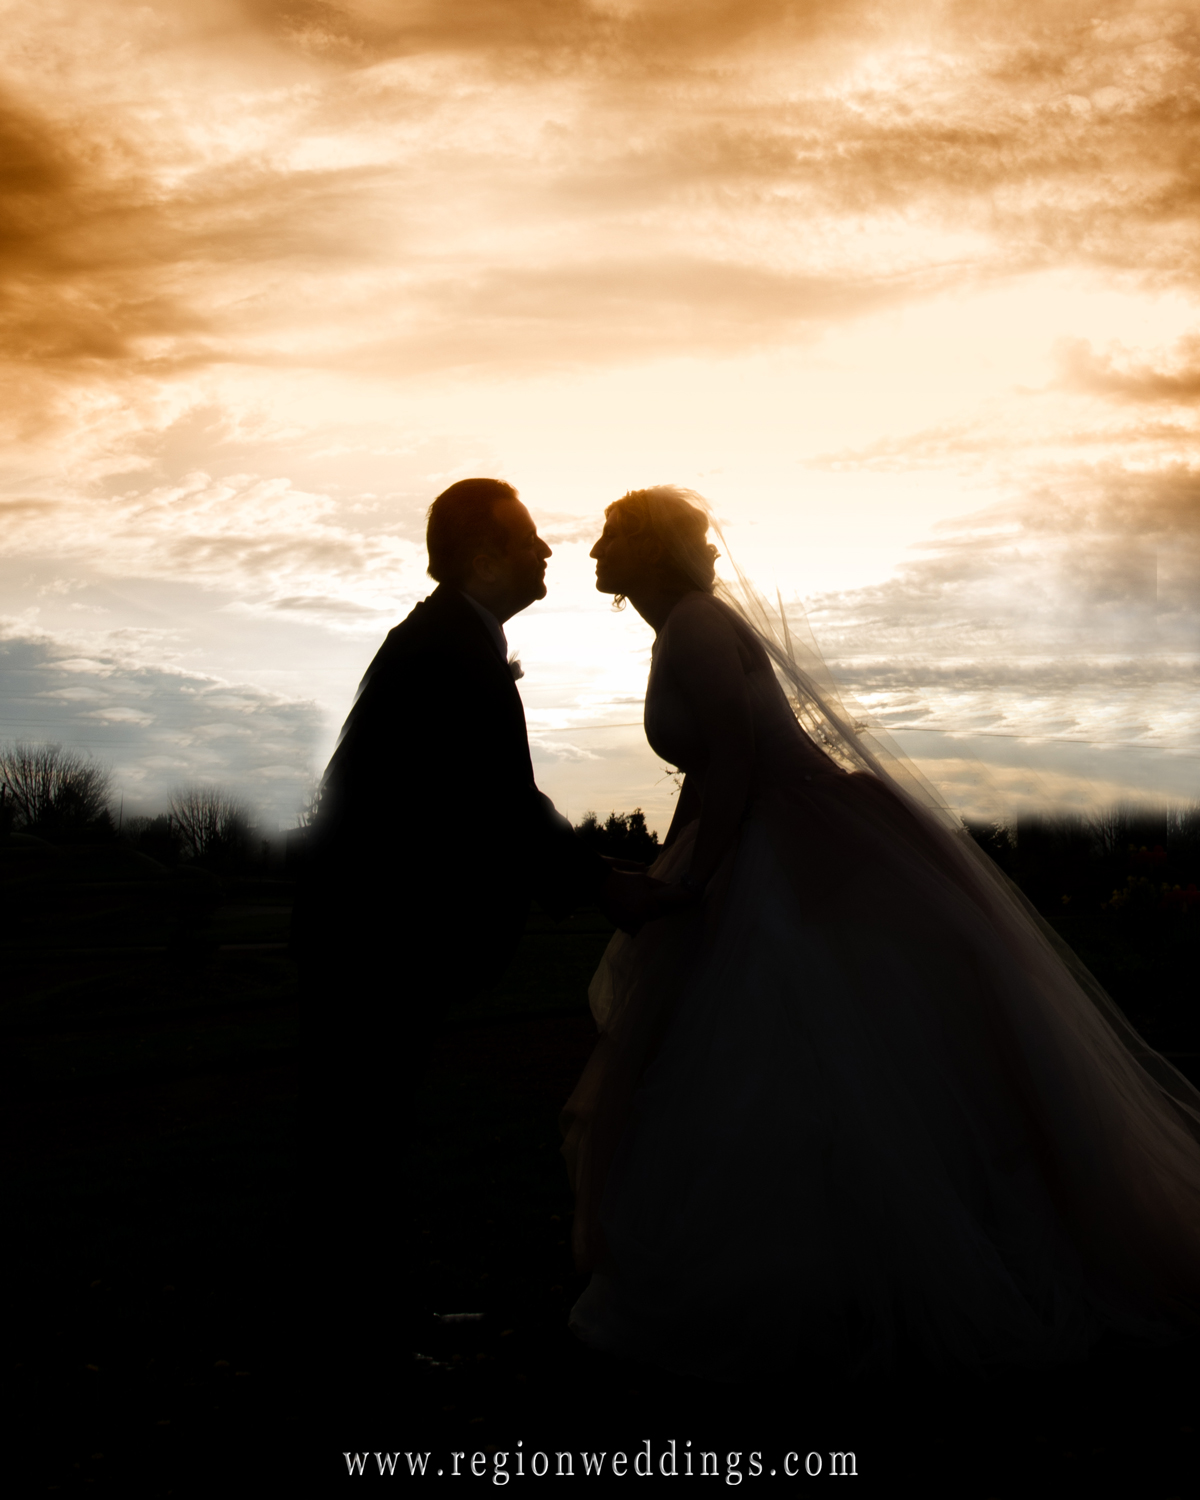 The bride and groom are about to kiss at sunset for their wedding photo in Dyer, Indiana.